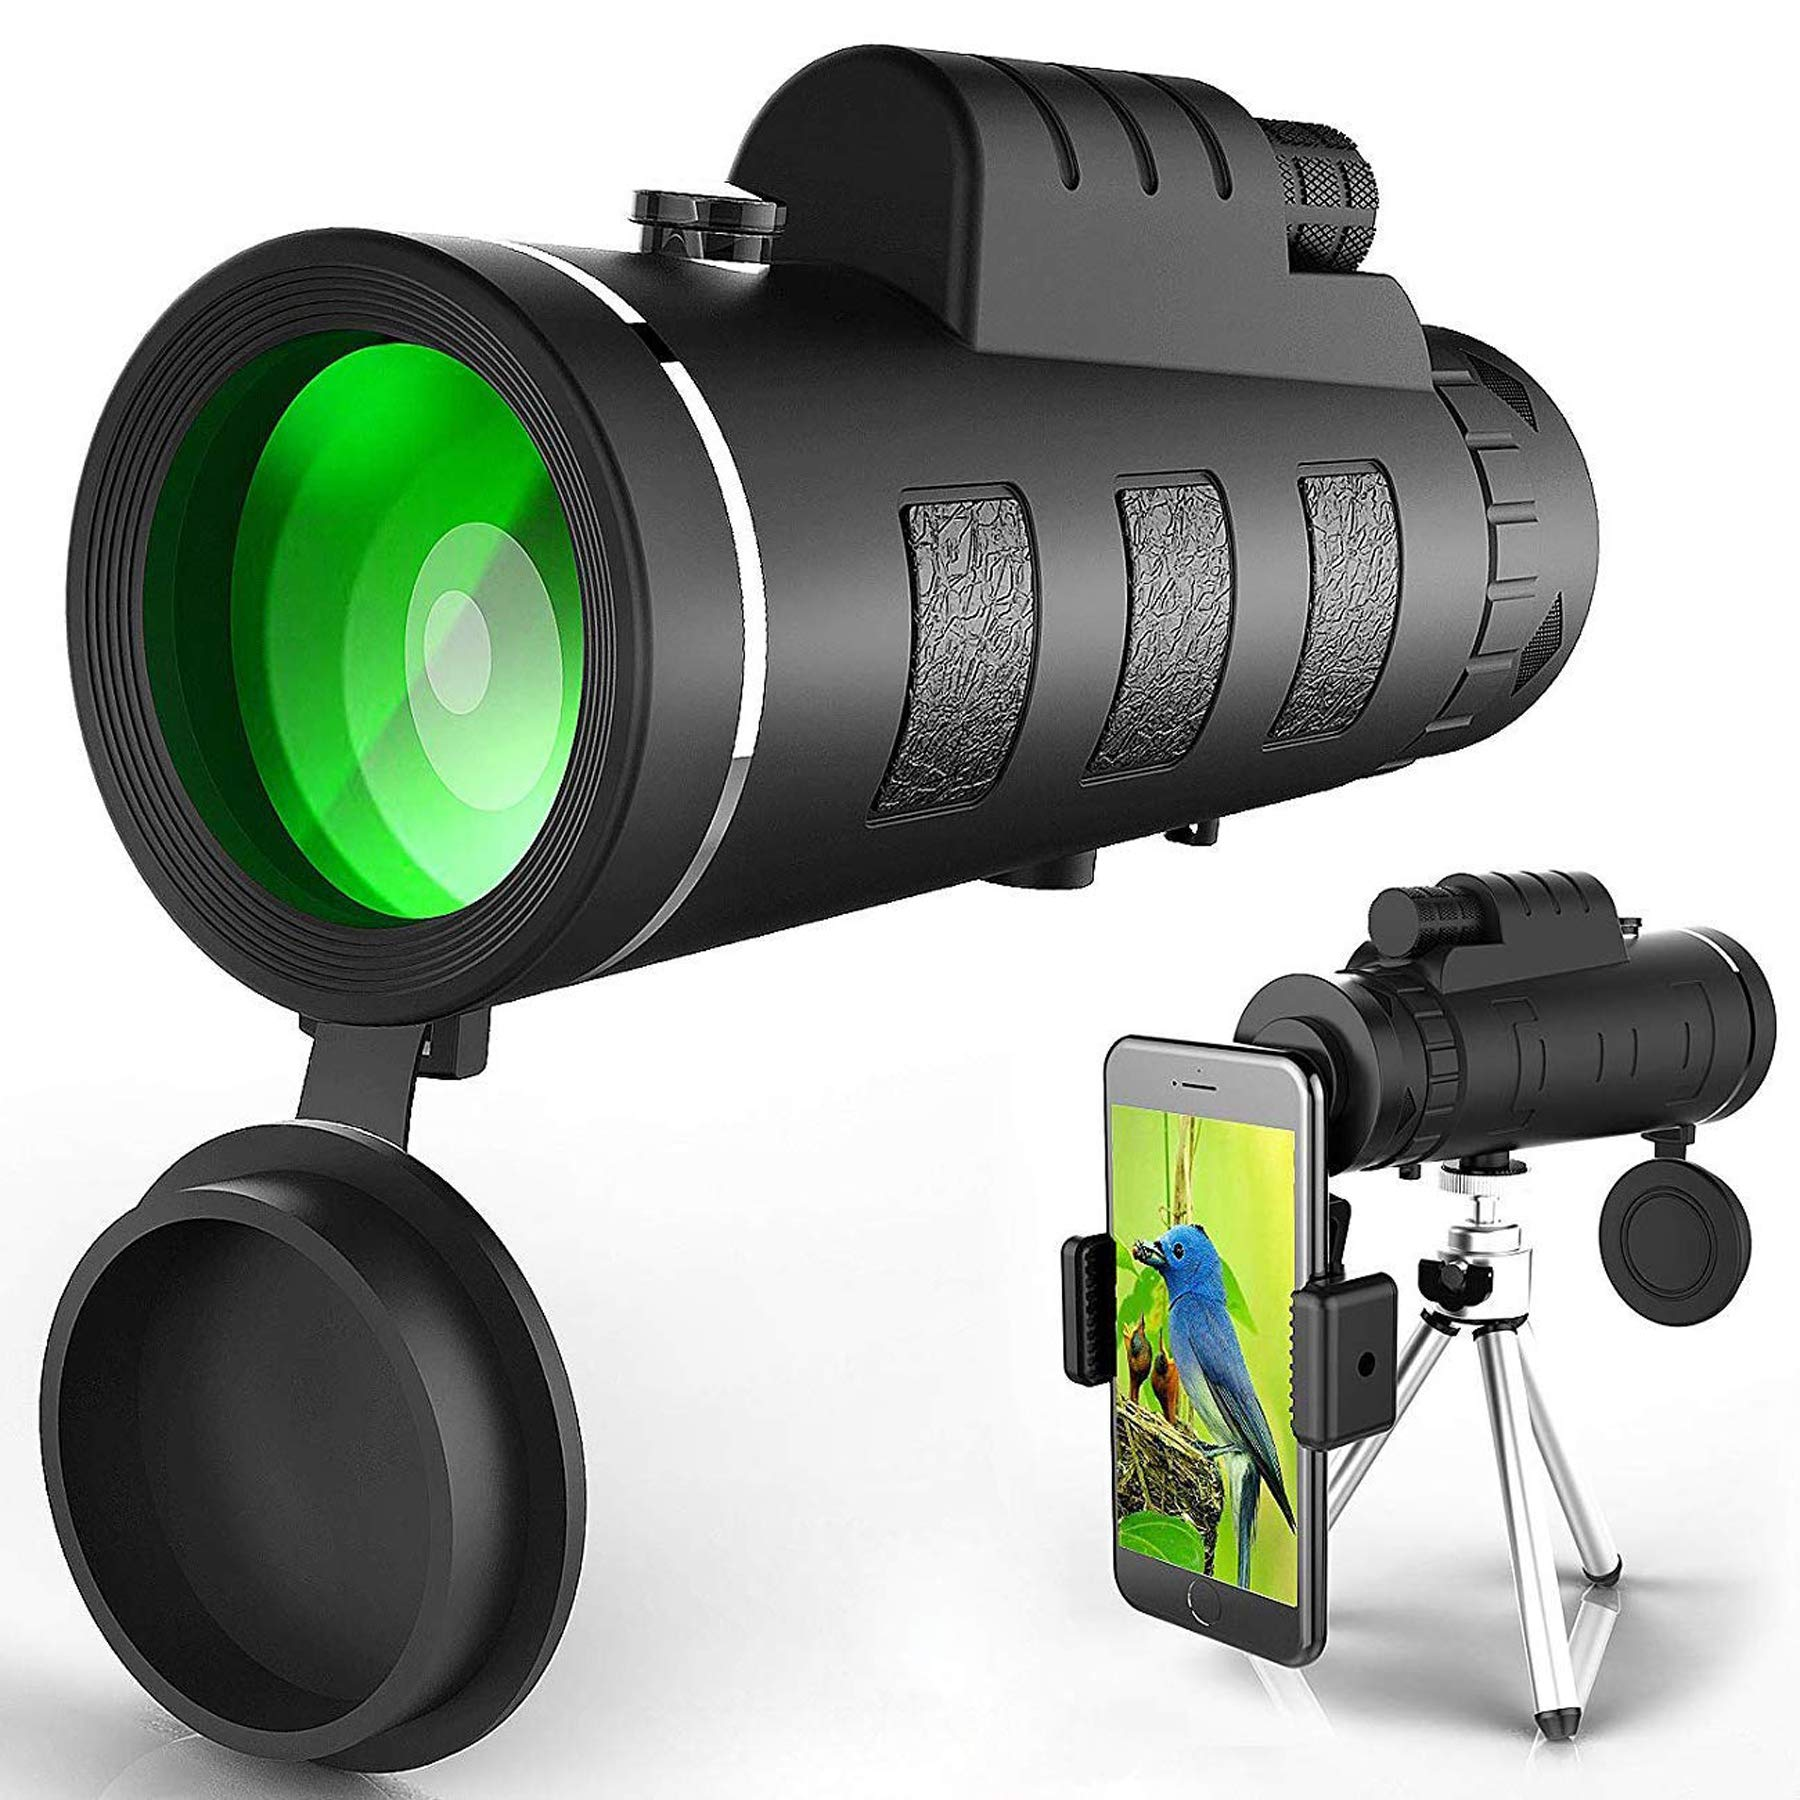 Monocular Telescope, Waterproof Monoculars with Phone Clip, Prism Monocular for Bird Watching/Hunting/Camping/Travel by QyFrlin